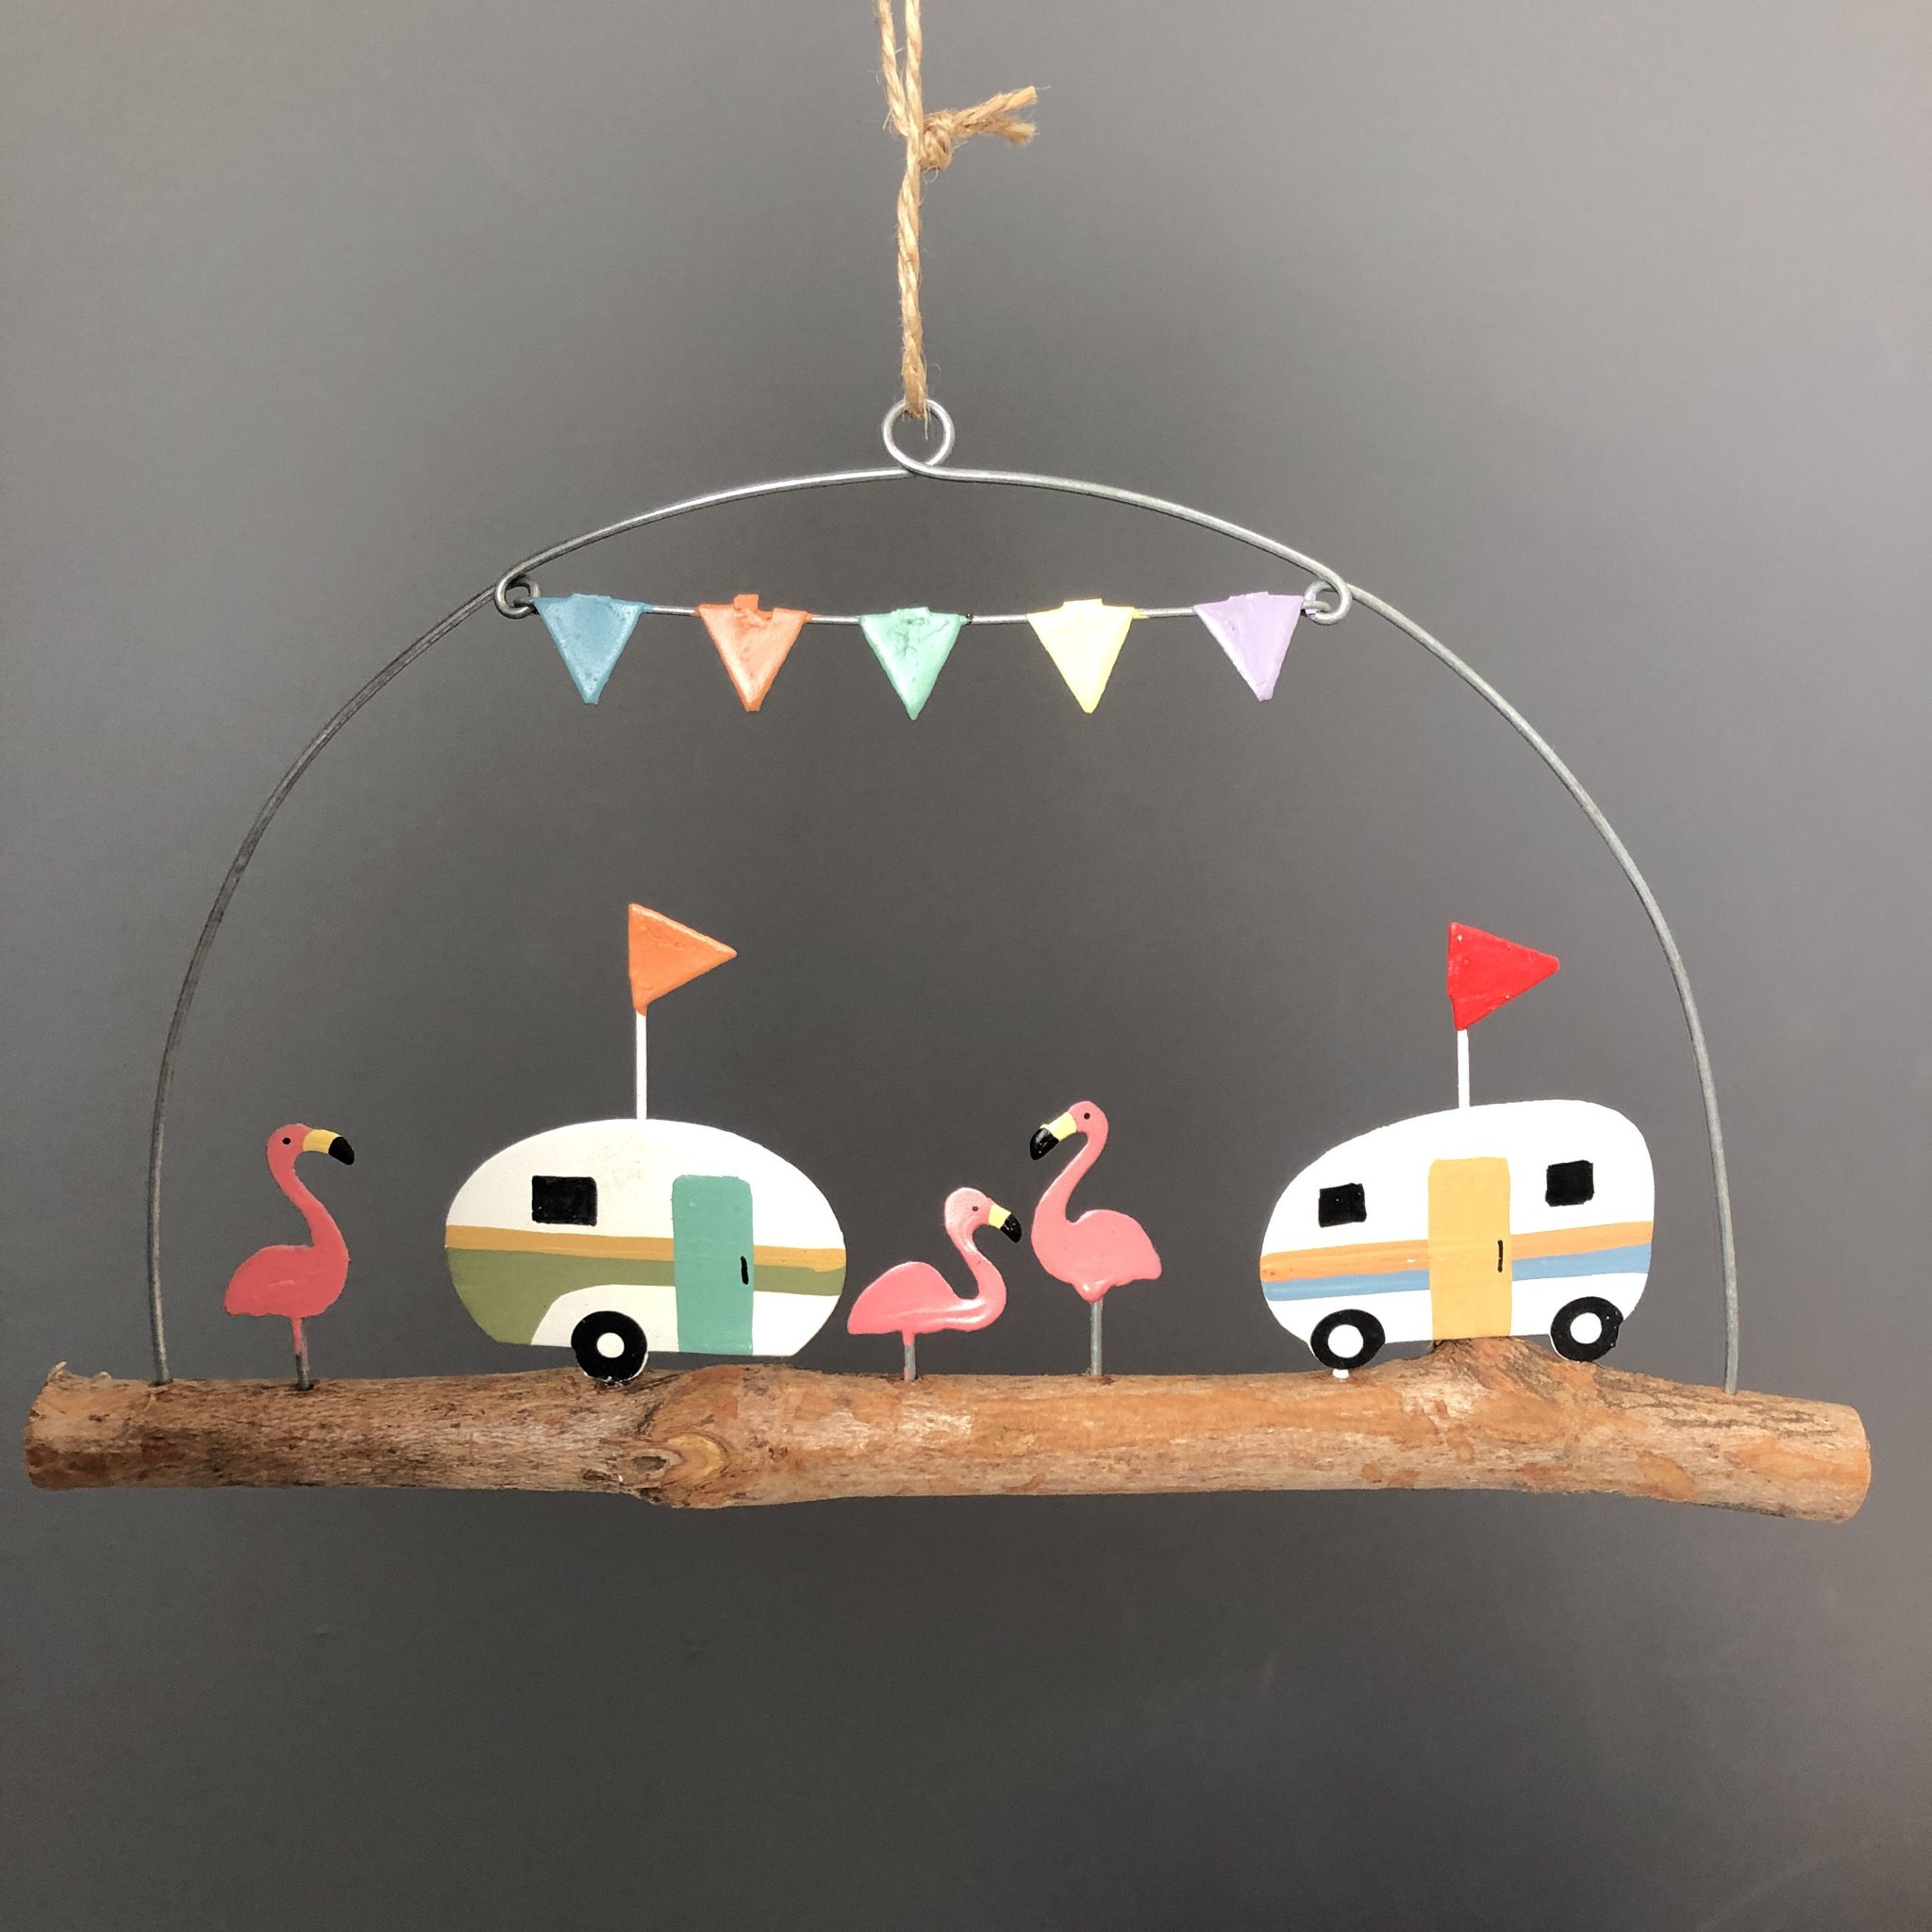 Retro Caravan and flamingo on stick hanging decoration by shoeless joe